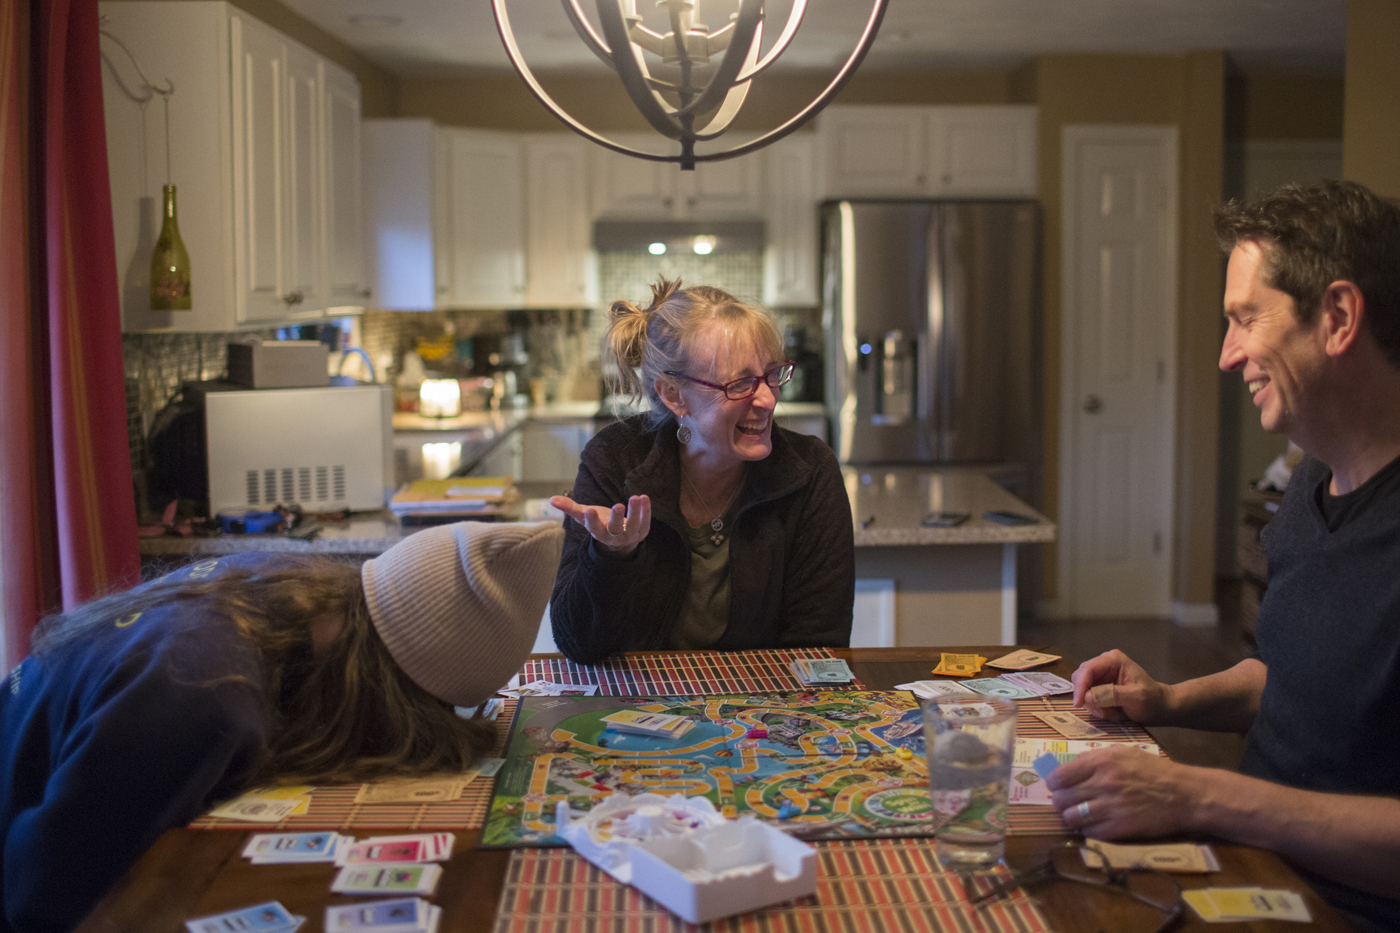 Faith's daughter doubles over with laughter as she plays a board game with her parents at the kitchen table.